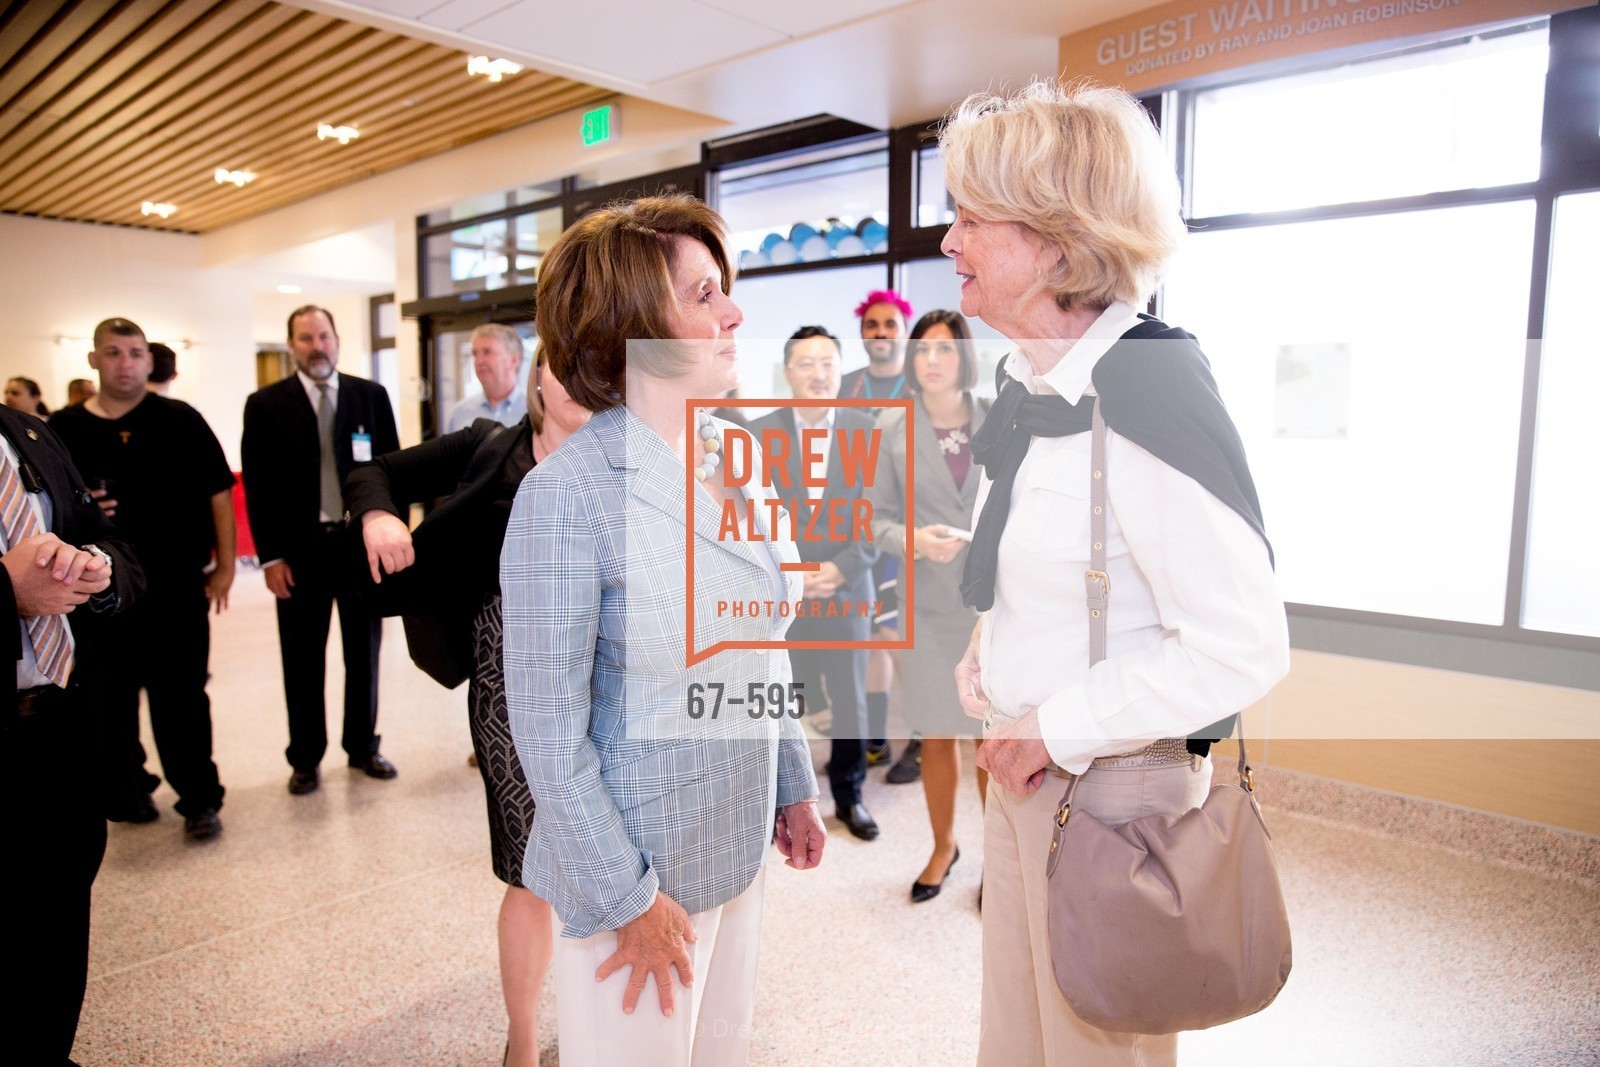 Nancy Pelosi, Martha Brigham, ST. ANTHONY'S Dining Room Ribbon Cutting Ceremony, US, October 5th, 2014,Drew Altizer, Drew Altizer Photography, full-service agency, private events, San Francisco photographer, photographer california